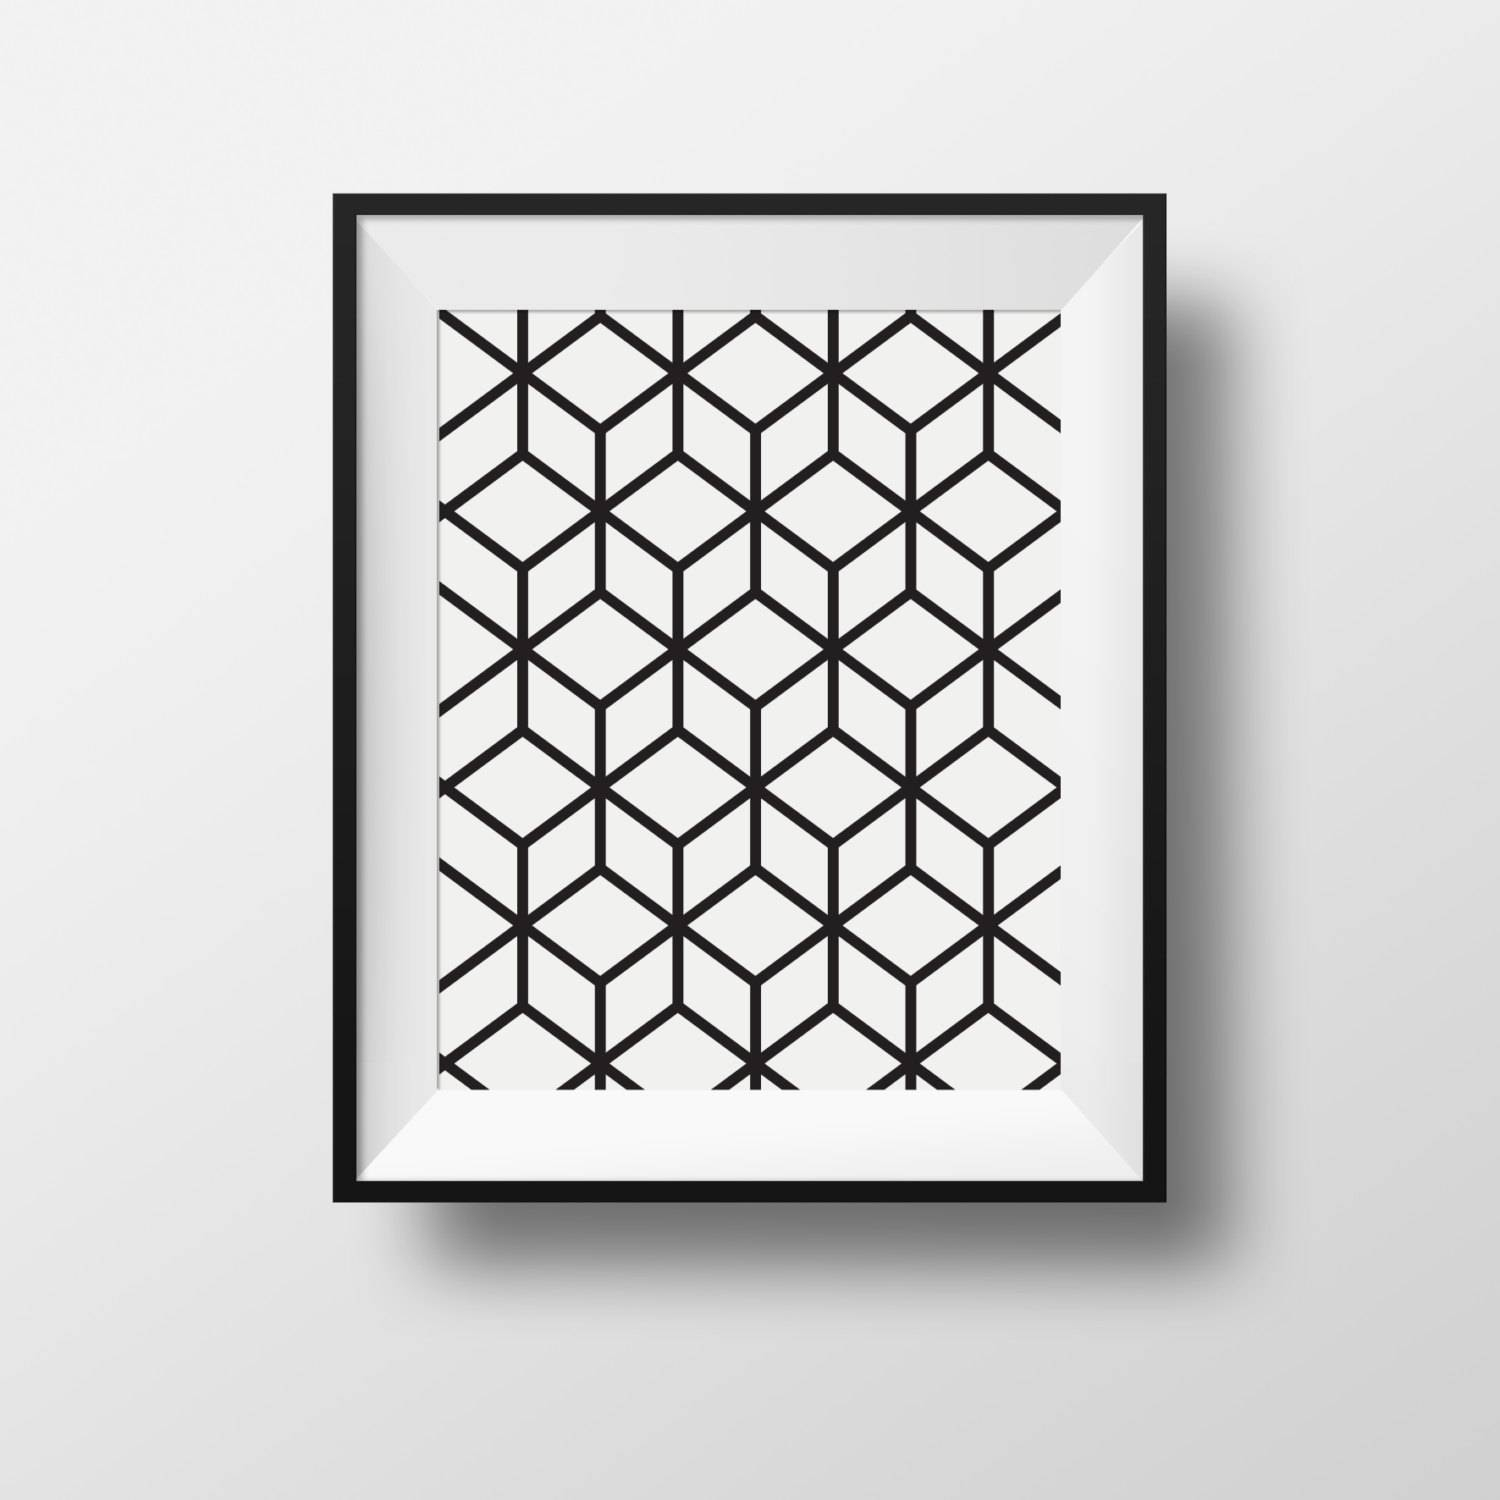 Wall Art Print Cubic Black And White Frame Ikea Ribba (View 14 of 16)